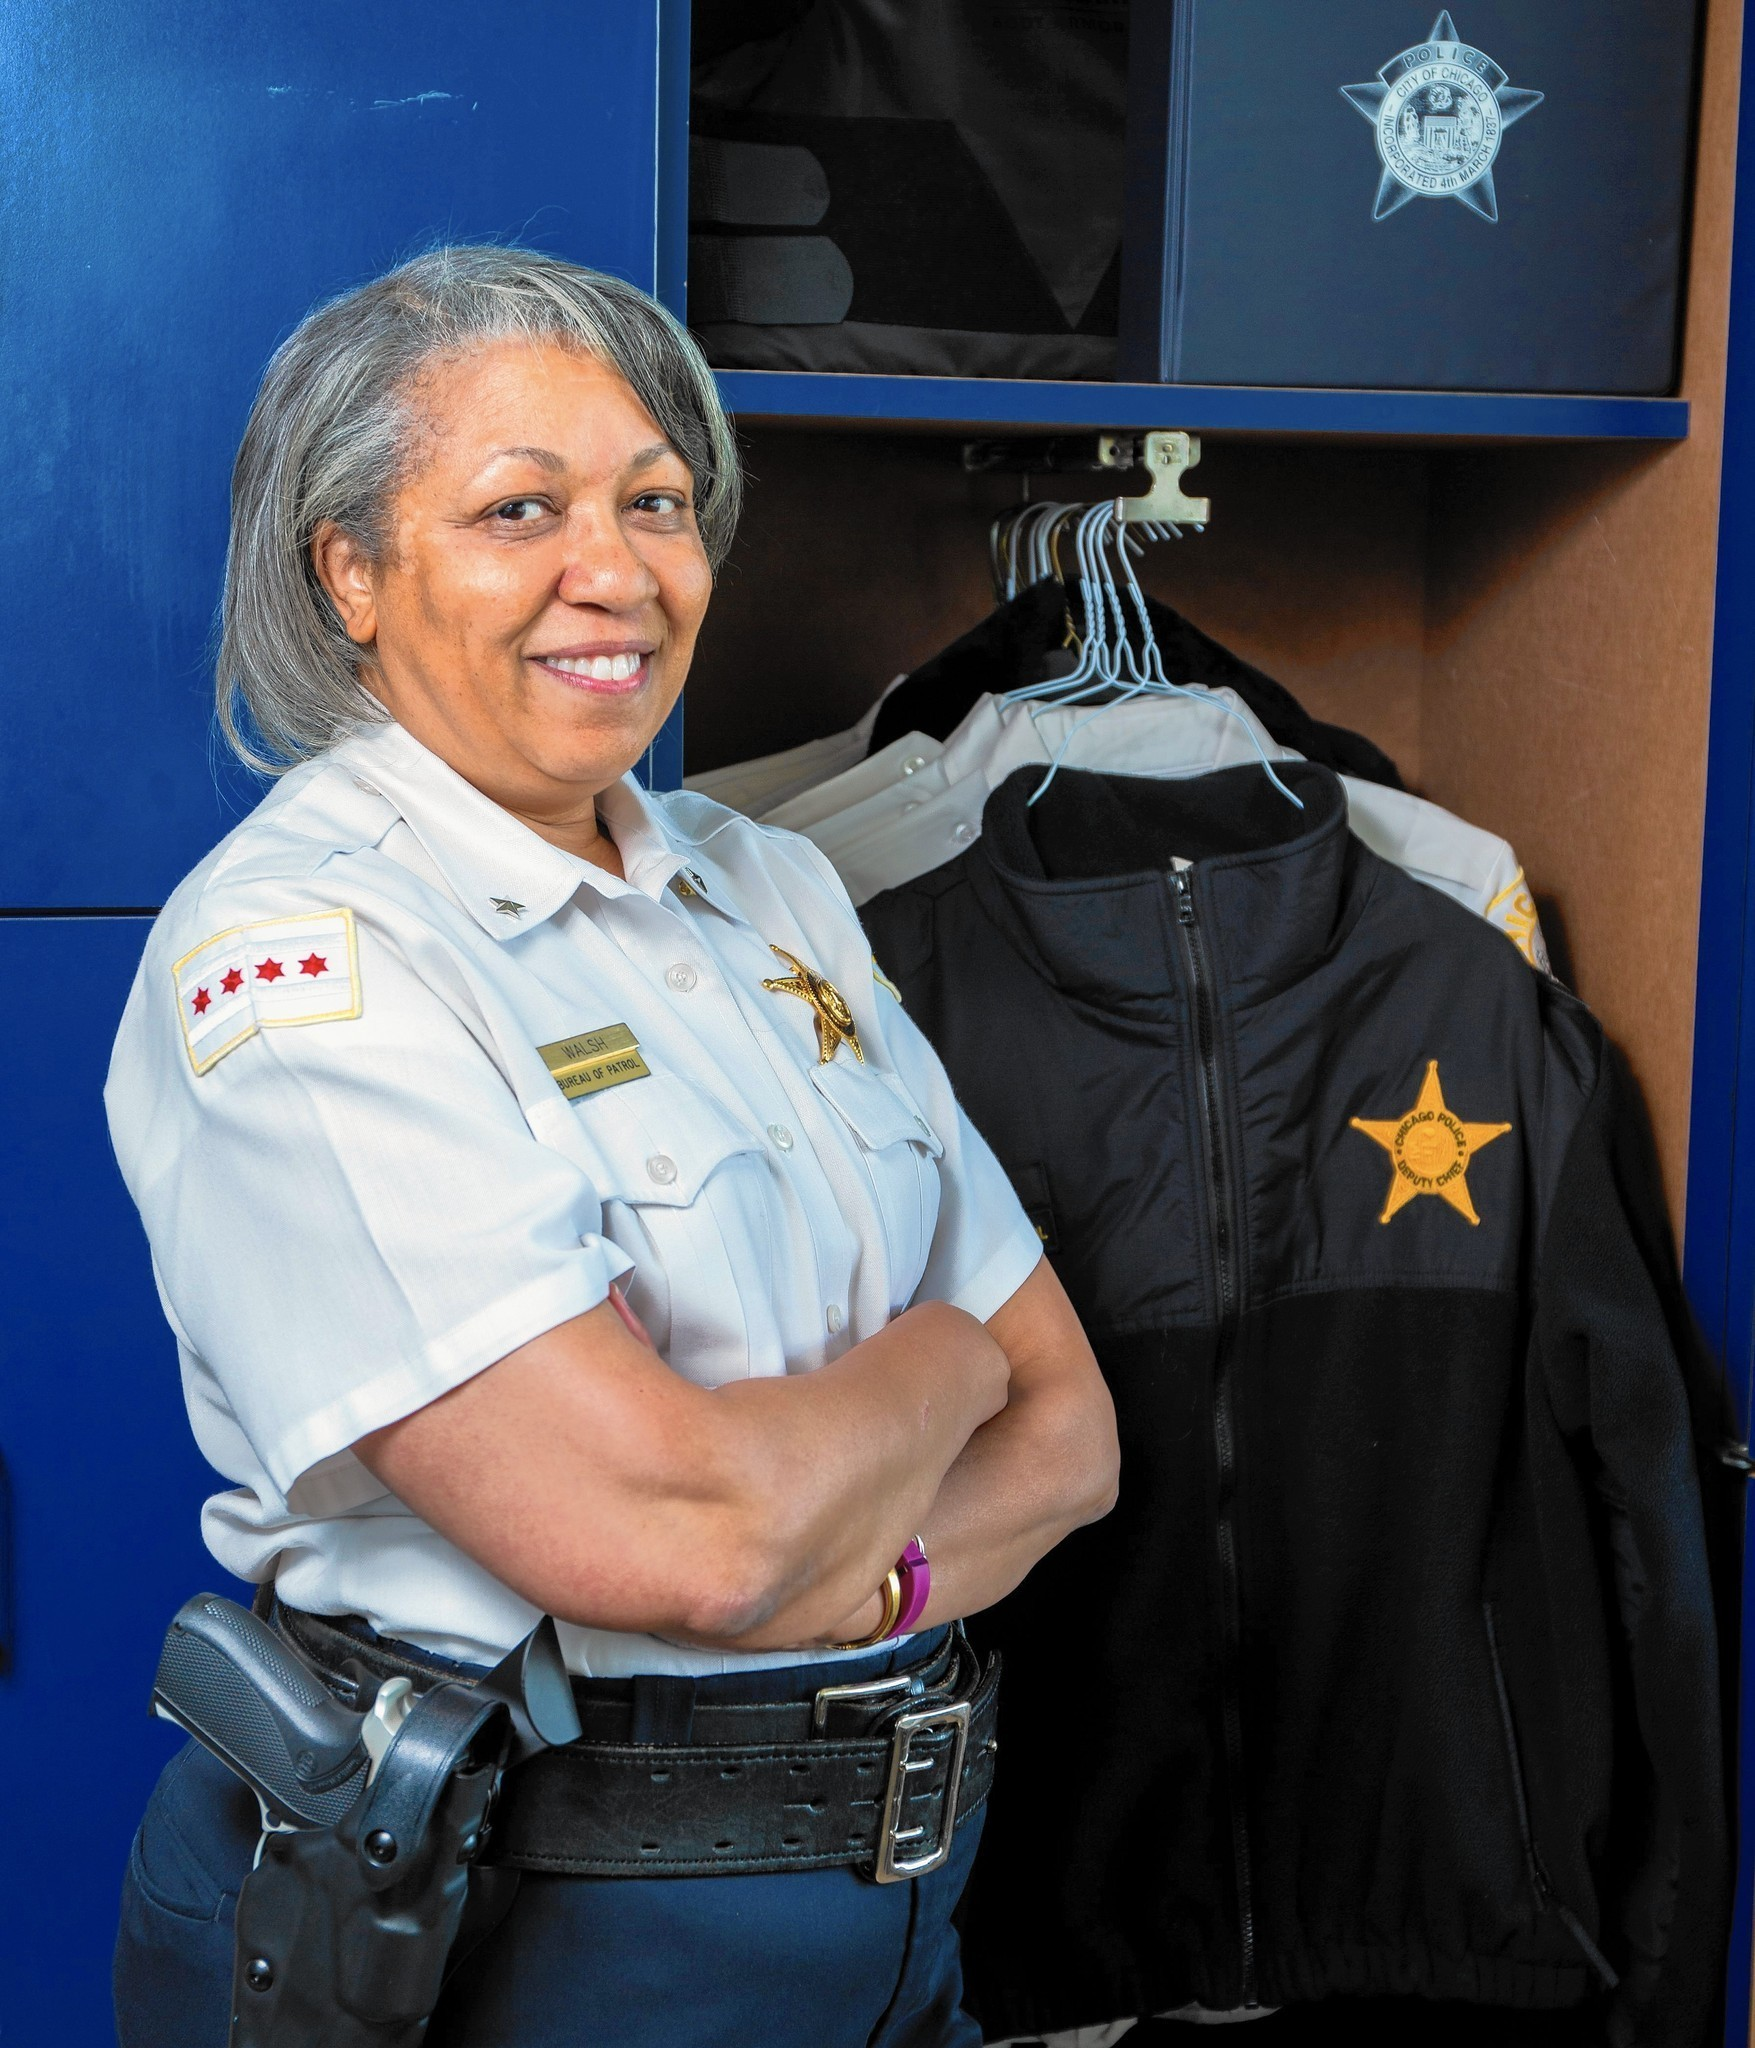 chicago s highest ranking female police officer reflects on her chicago s highest ranking female police officer reflects on her career chicago tribune